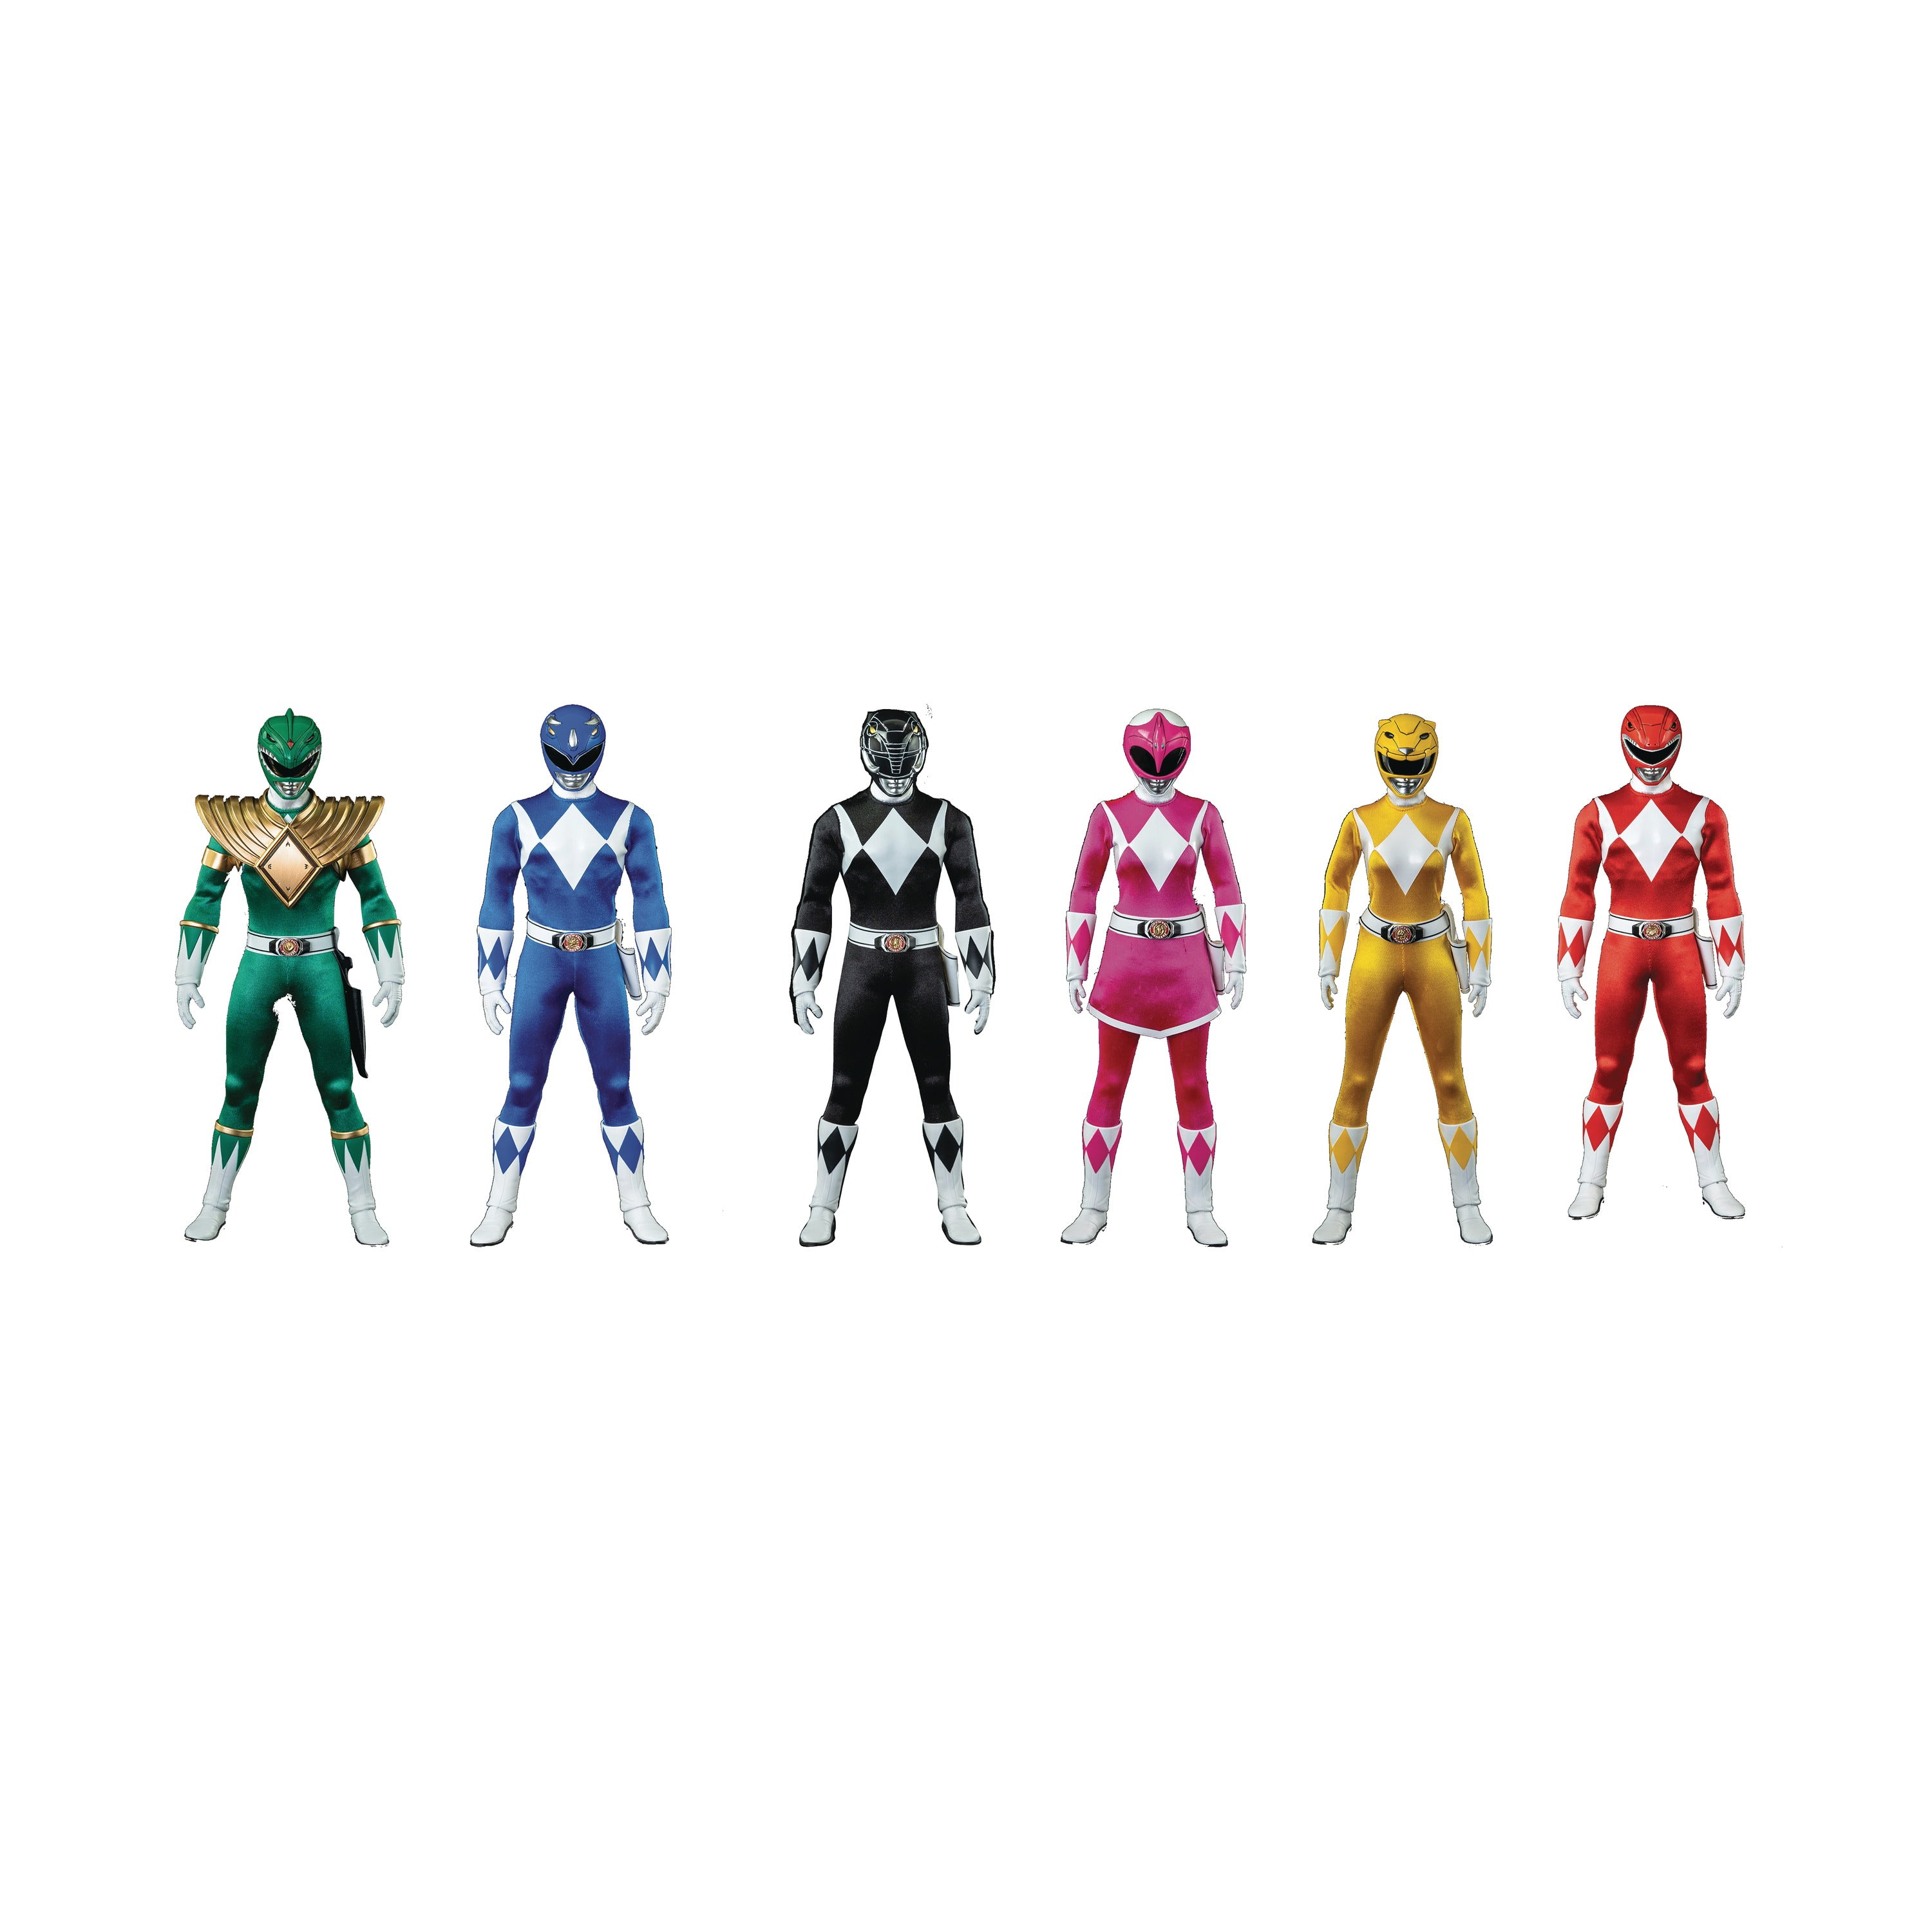 Mighty Morphin Power Rangers 1/6 Scale Action Figure 6pk Set